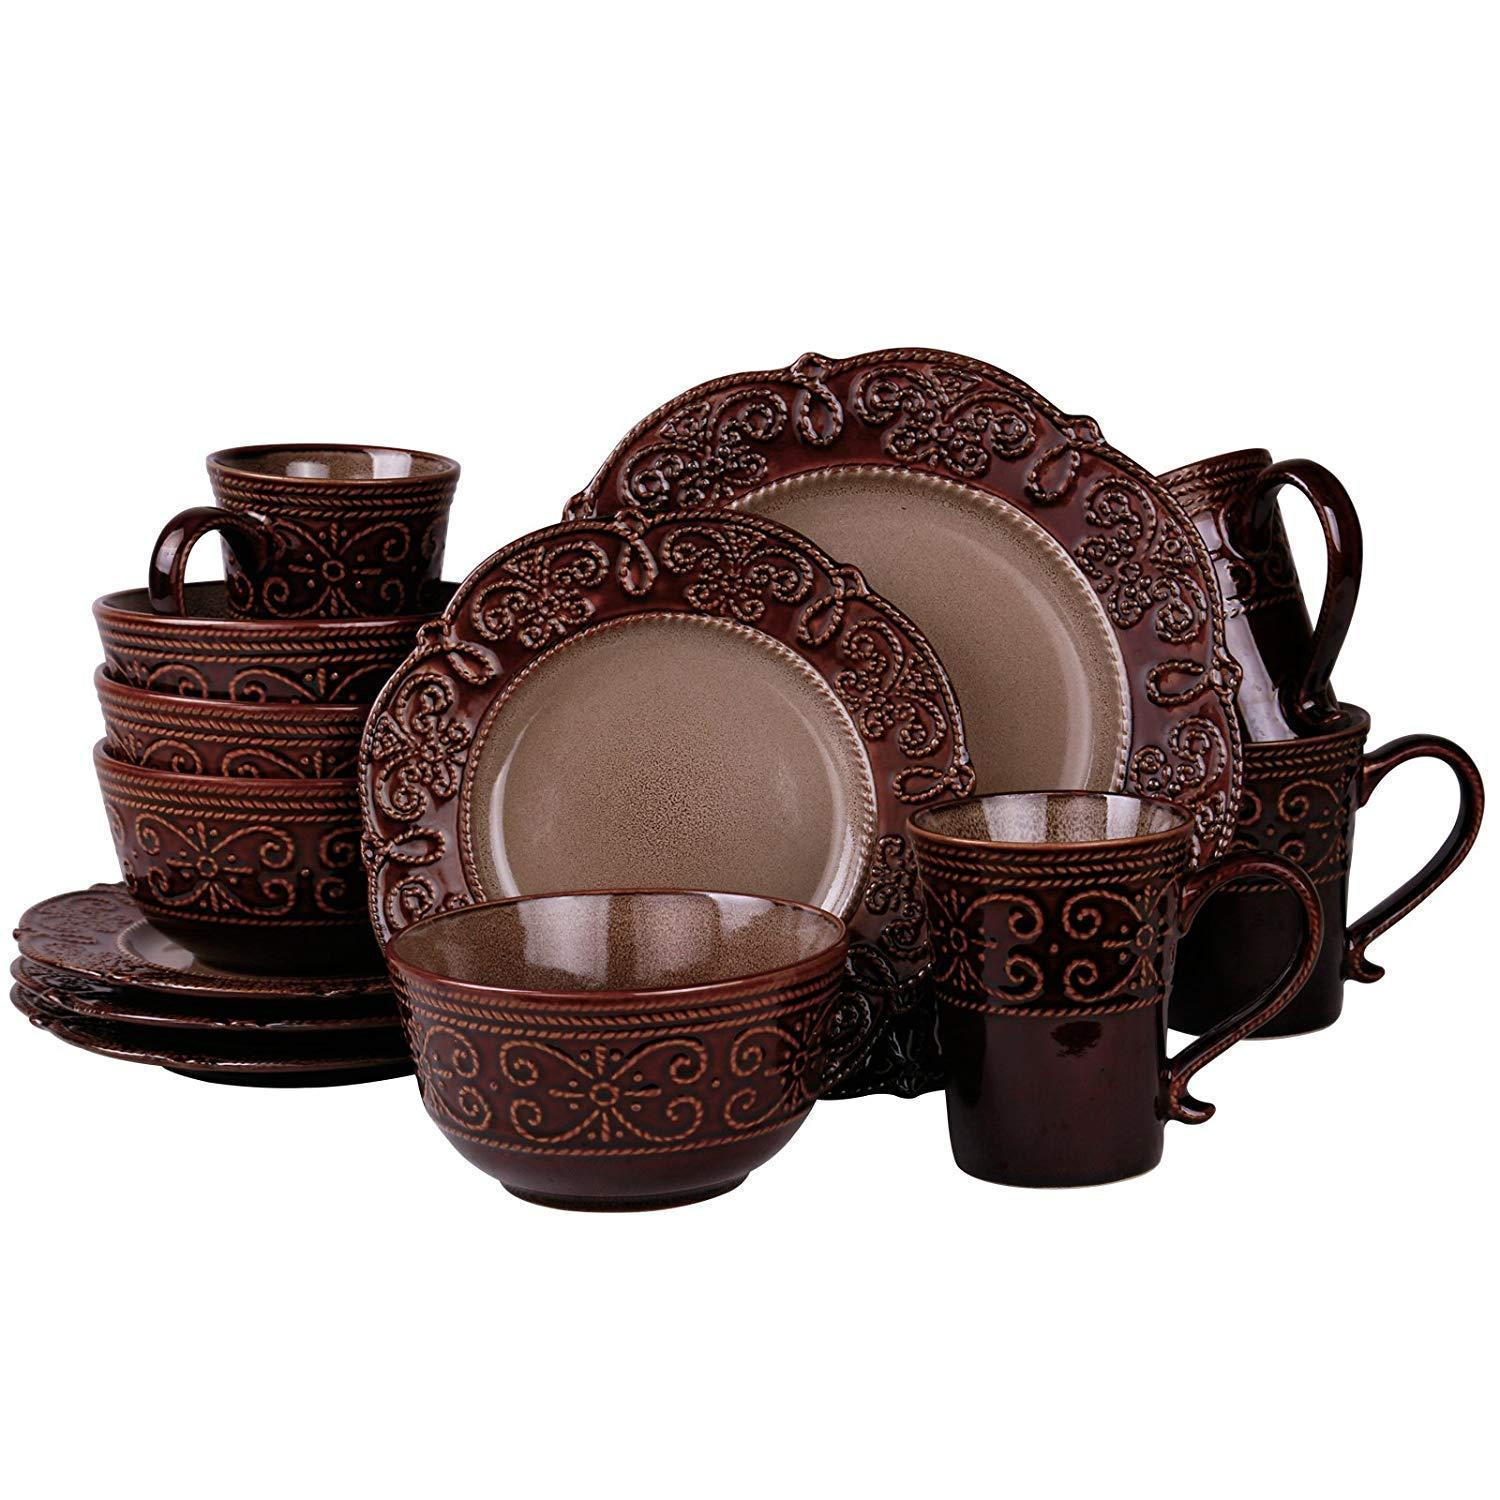 Luxurious And Elegance Dinnerware Set